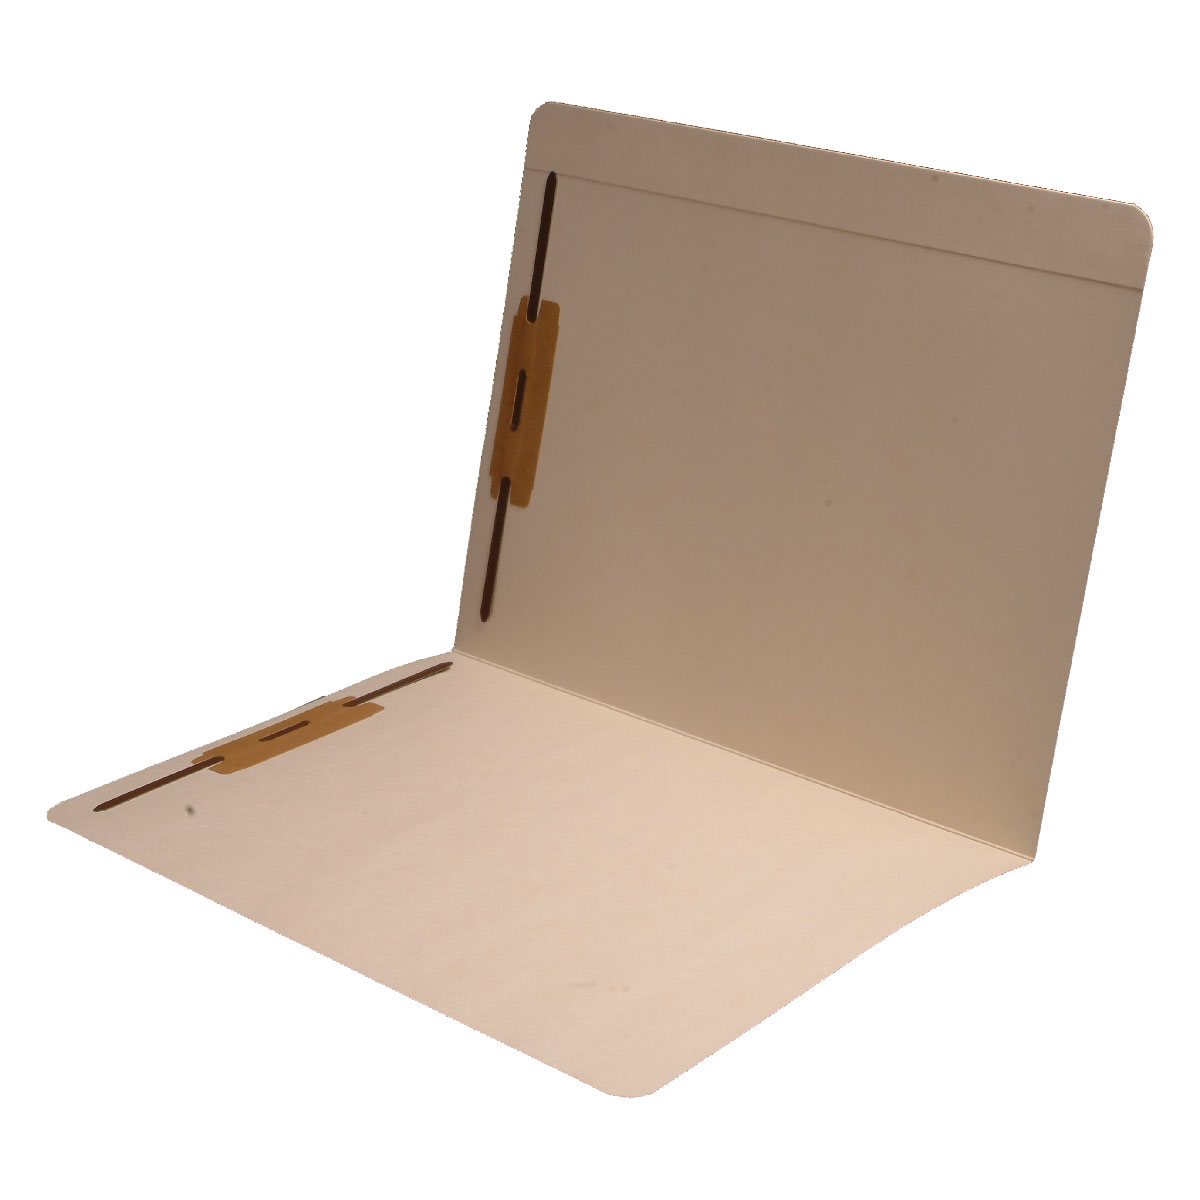 S-9173 - 14 pt Manila Folders, Full Cut Reinforced Top Tab, Letter Size, Fastener Pos #1 and #3 (Box of 50)